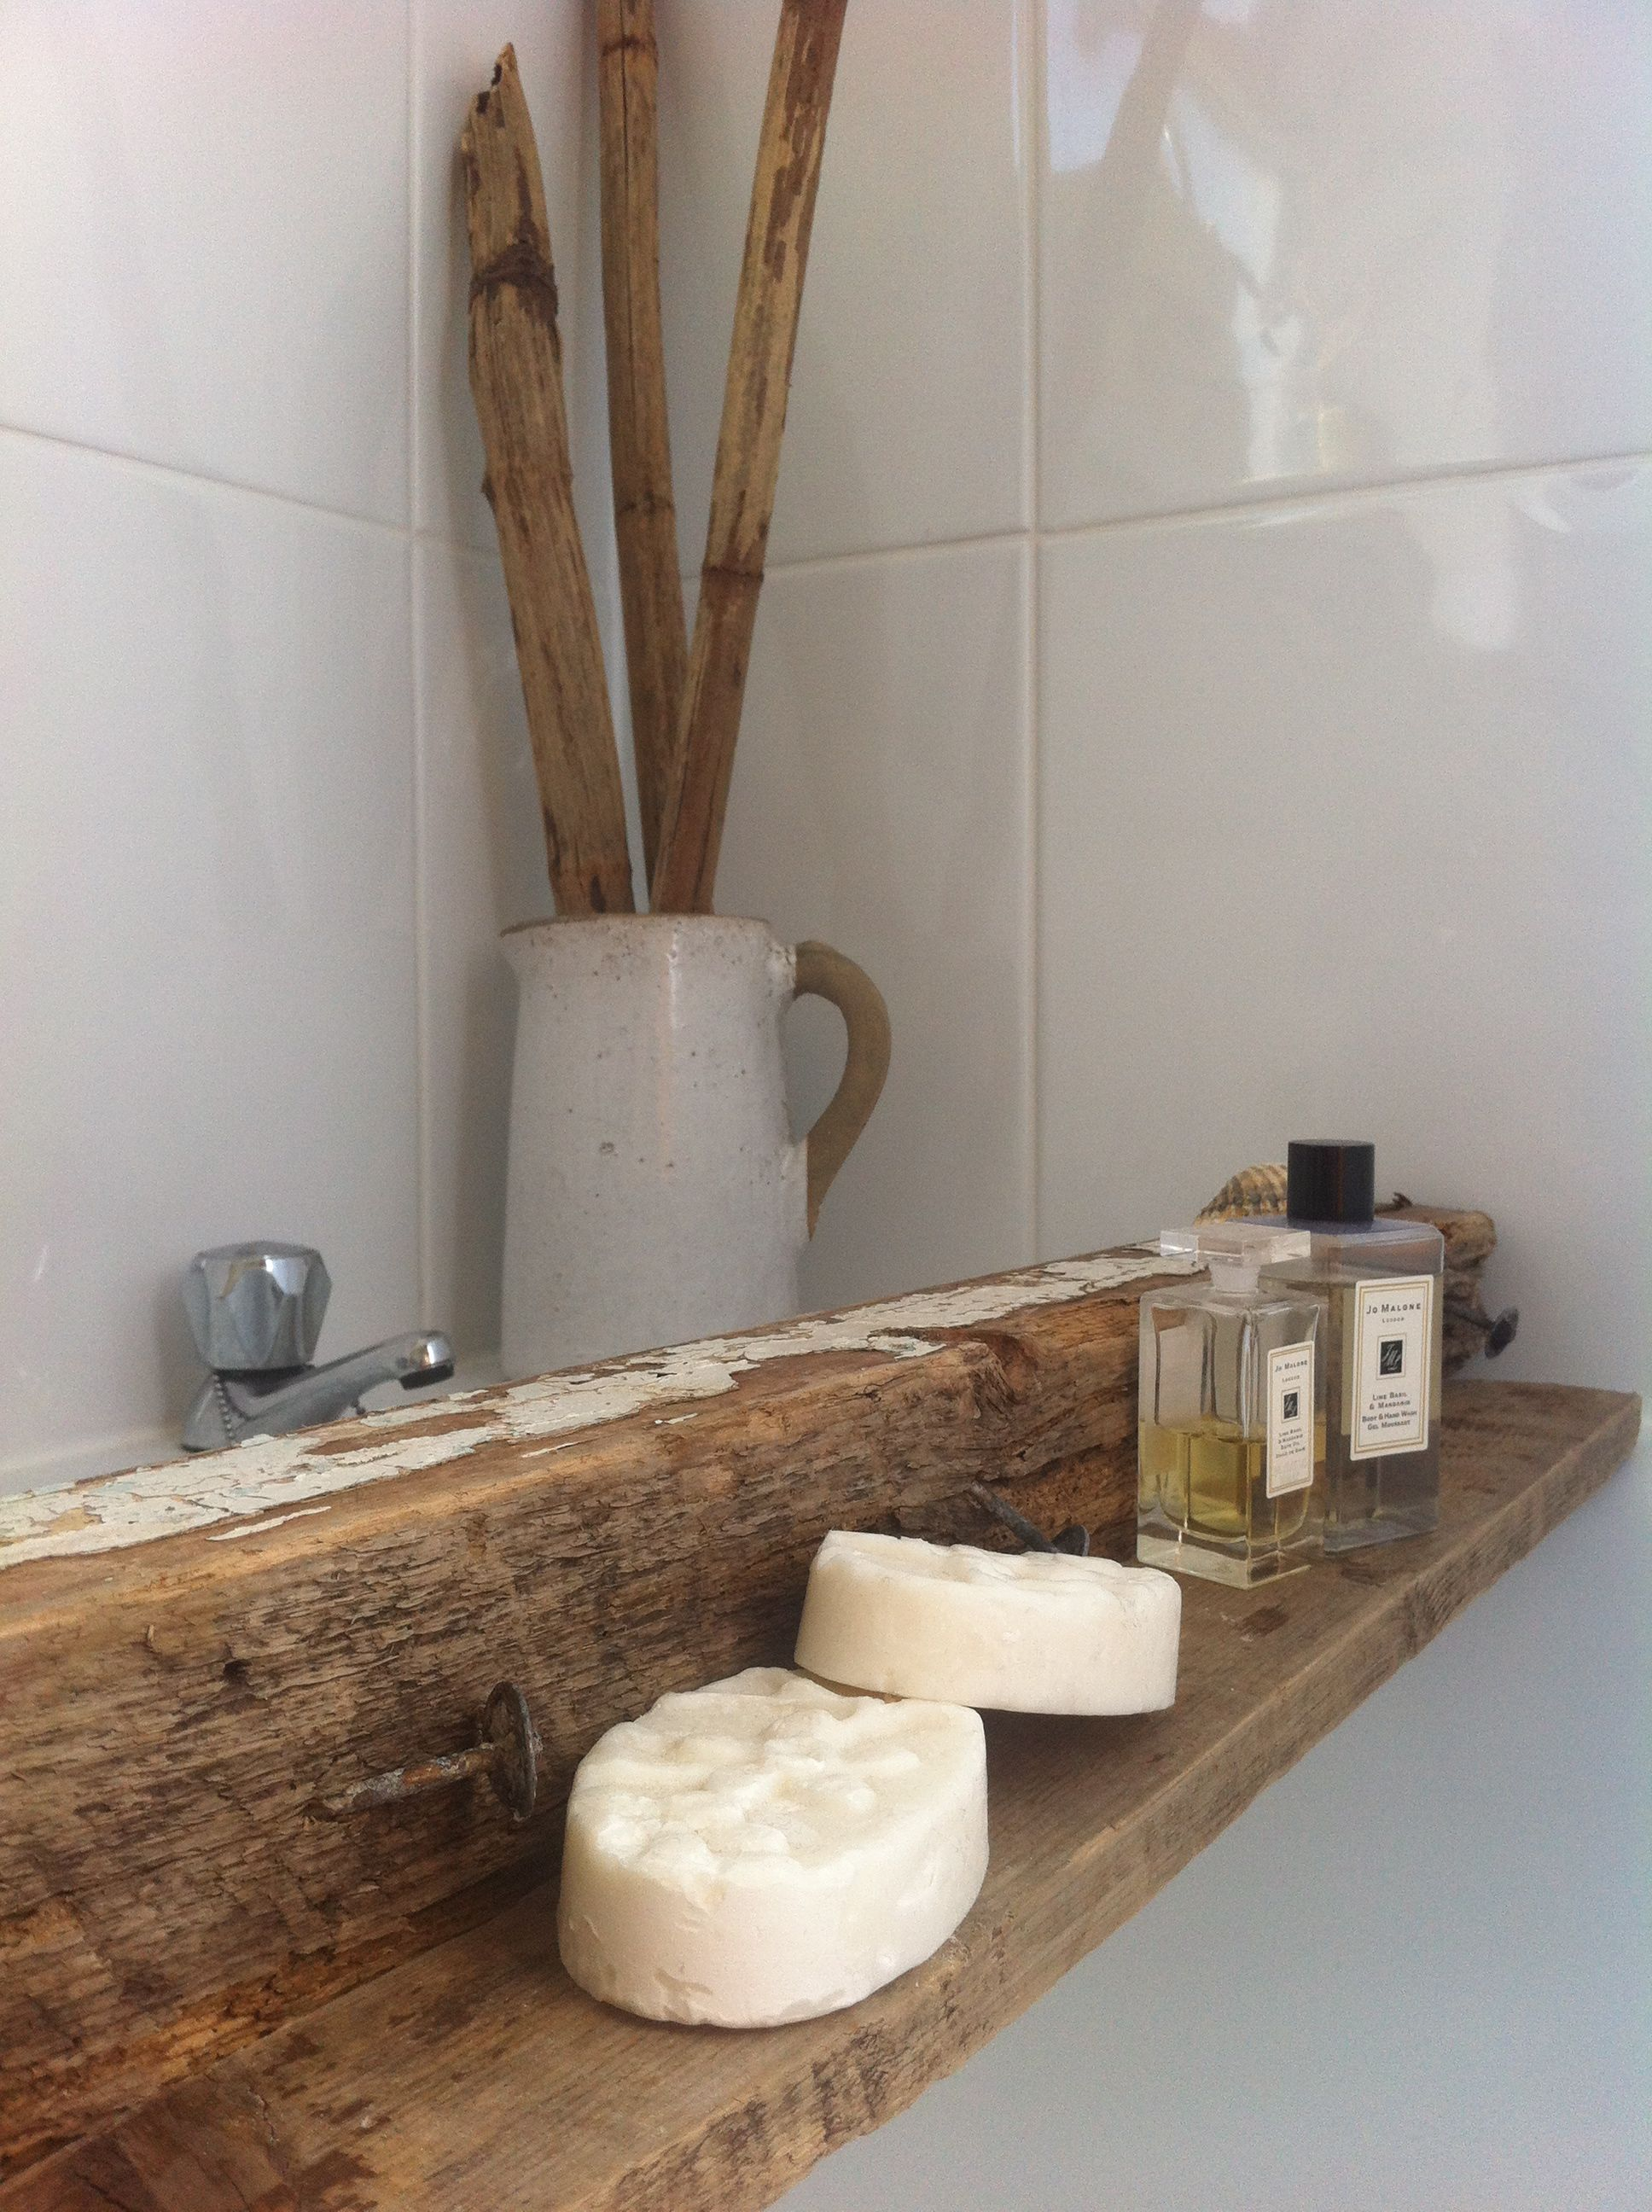 Driftwood Bathroom Accessories Driftwood Bath Rack Free From The Beach And Totally Unique